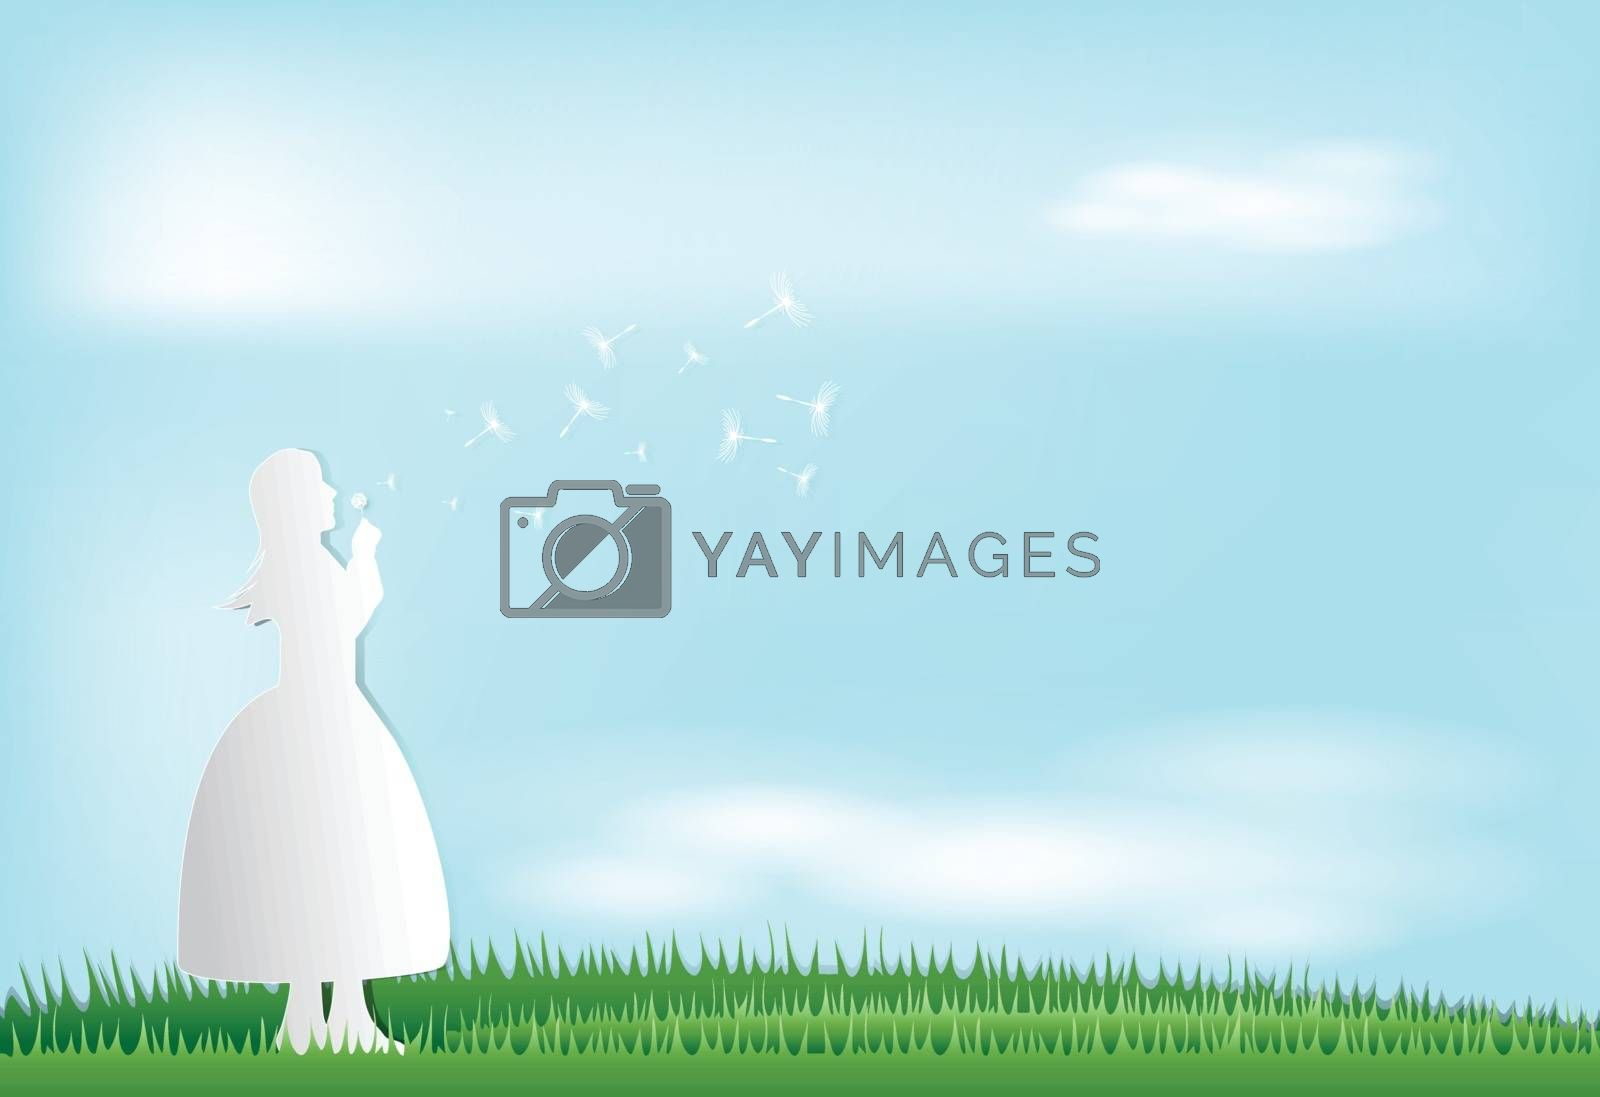 Lady blowing dandelion in meadow, nature background, paper art style illustration